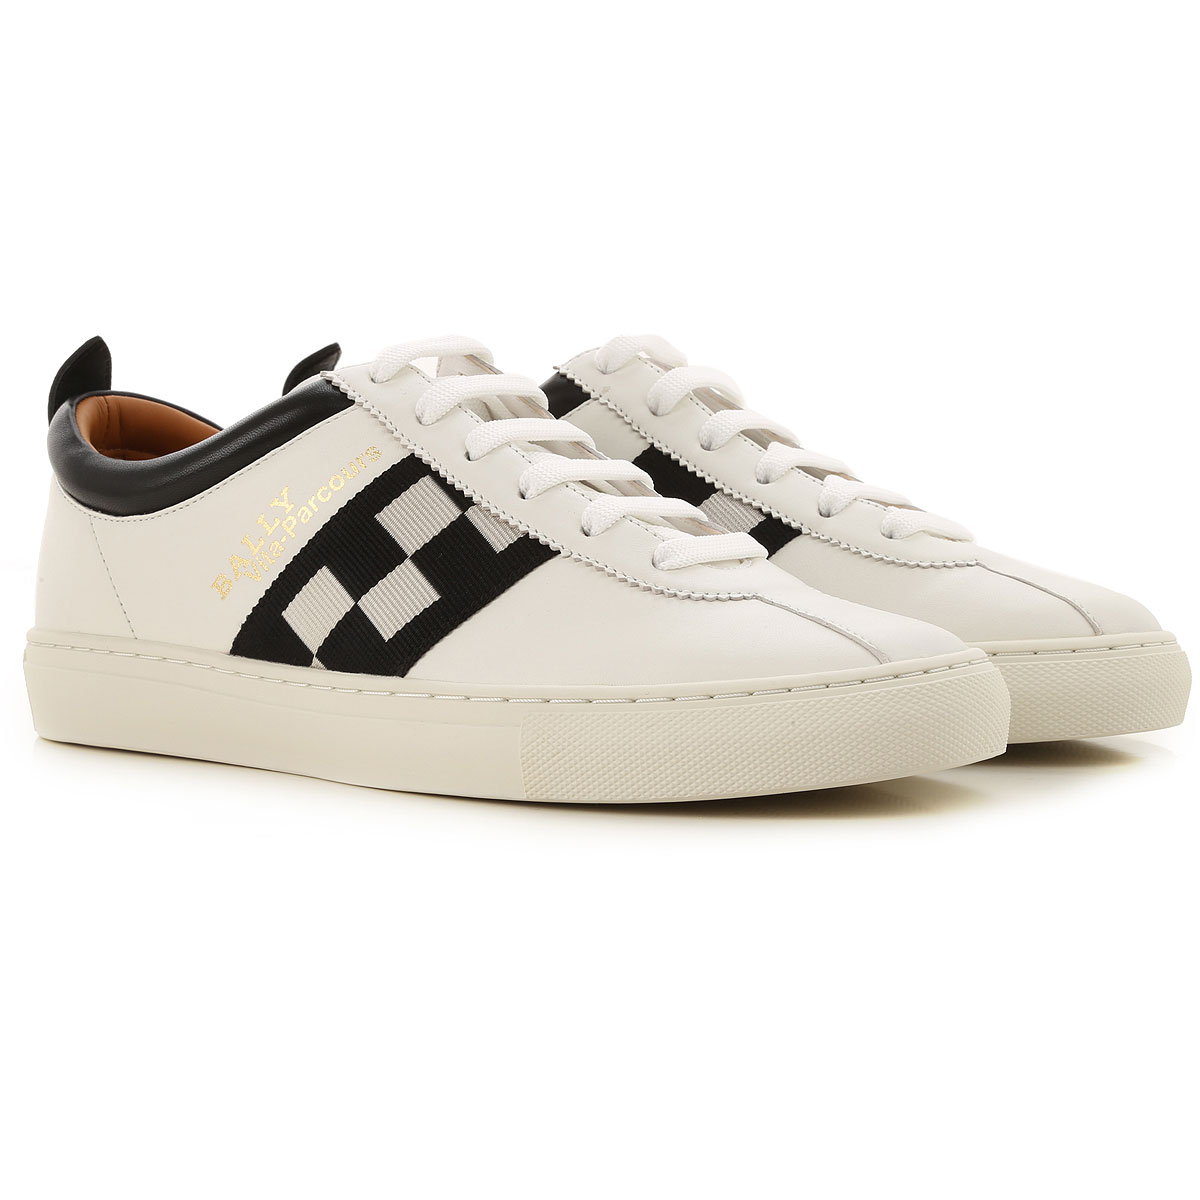 Bally Sneakers for Men On Sale, White, Leather, 2019, 10 6.5 7 9